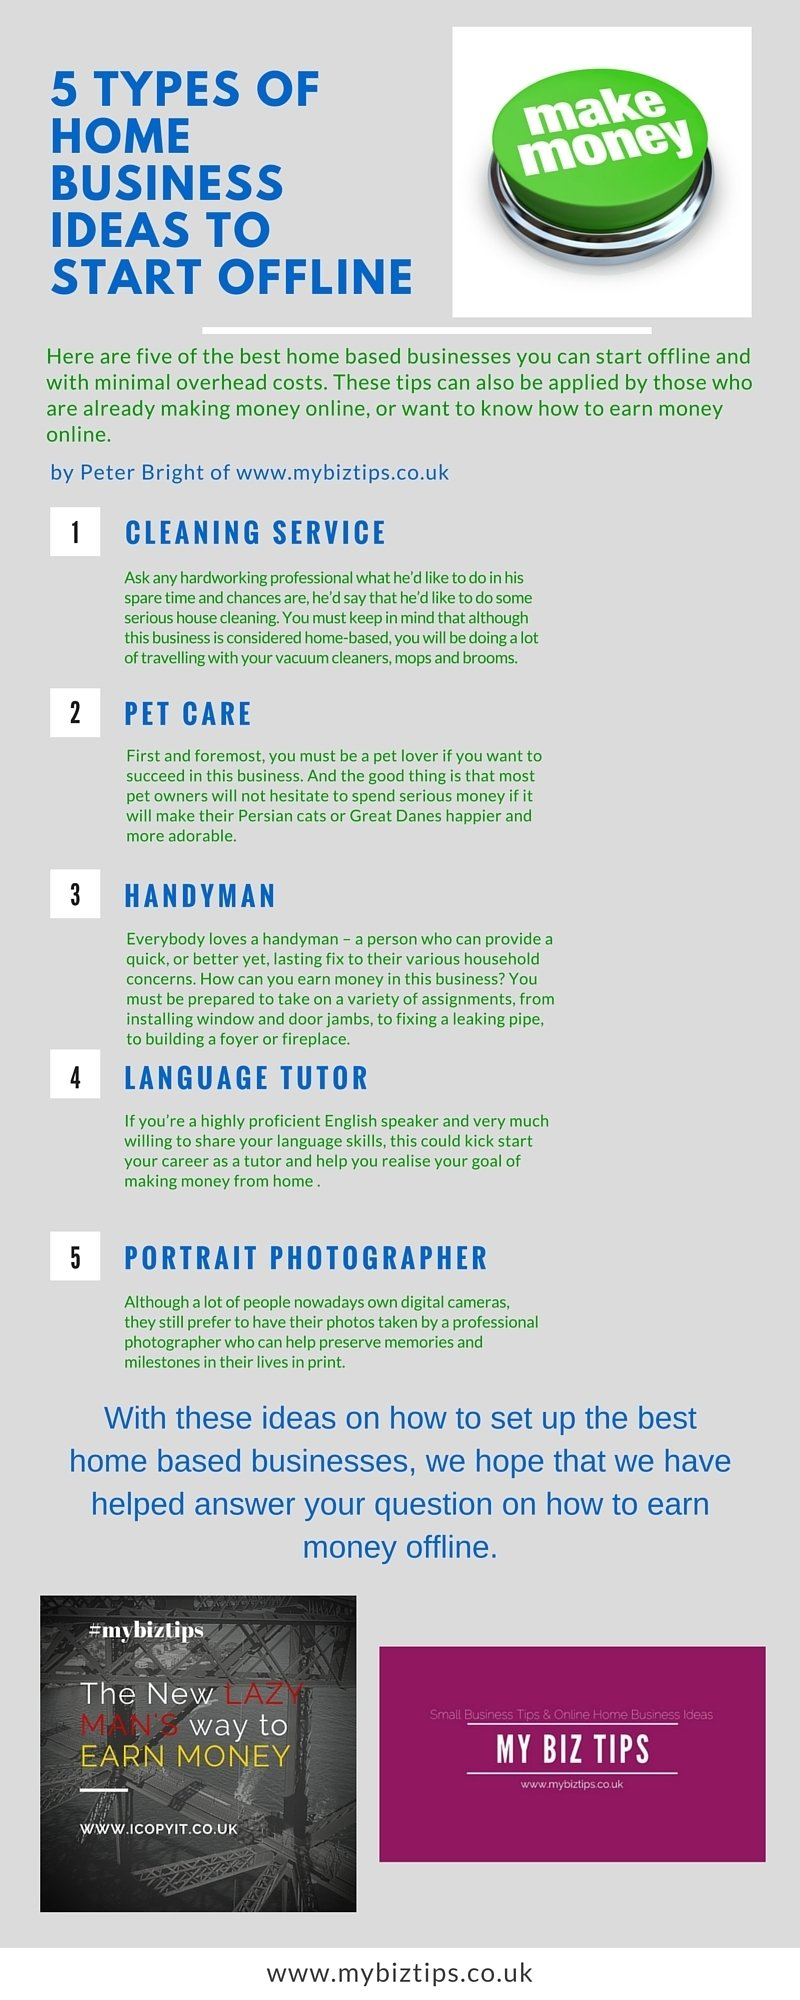 10 Nice How To Make Millions With Your Ideas 5 types of home business ideas to start offline infographic 2020